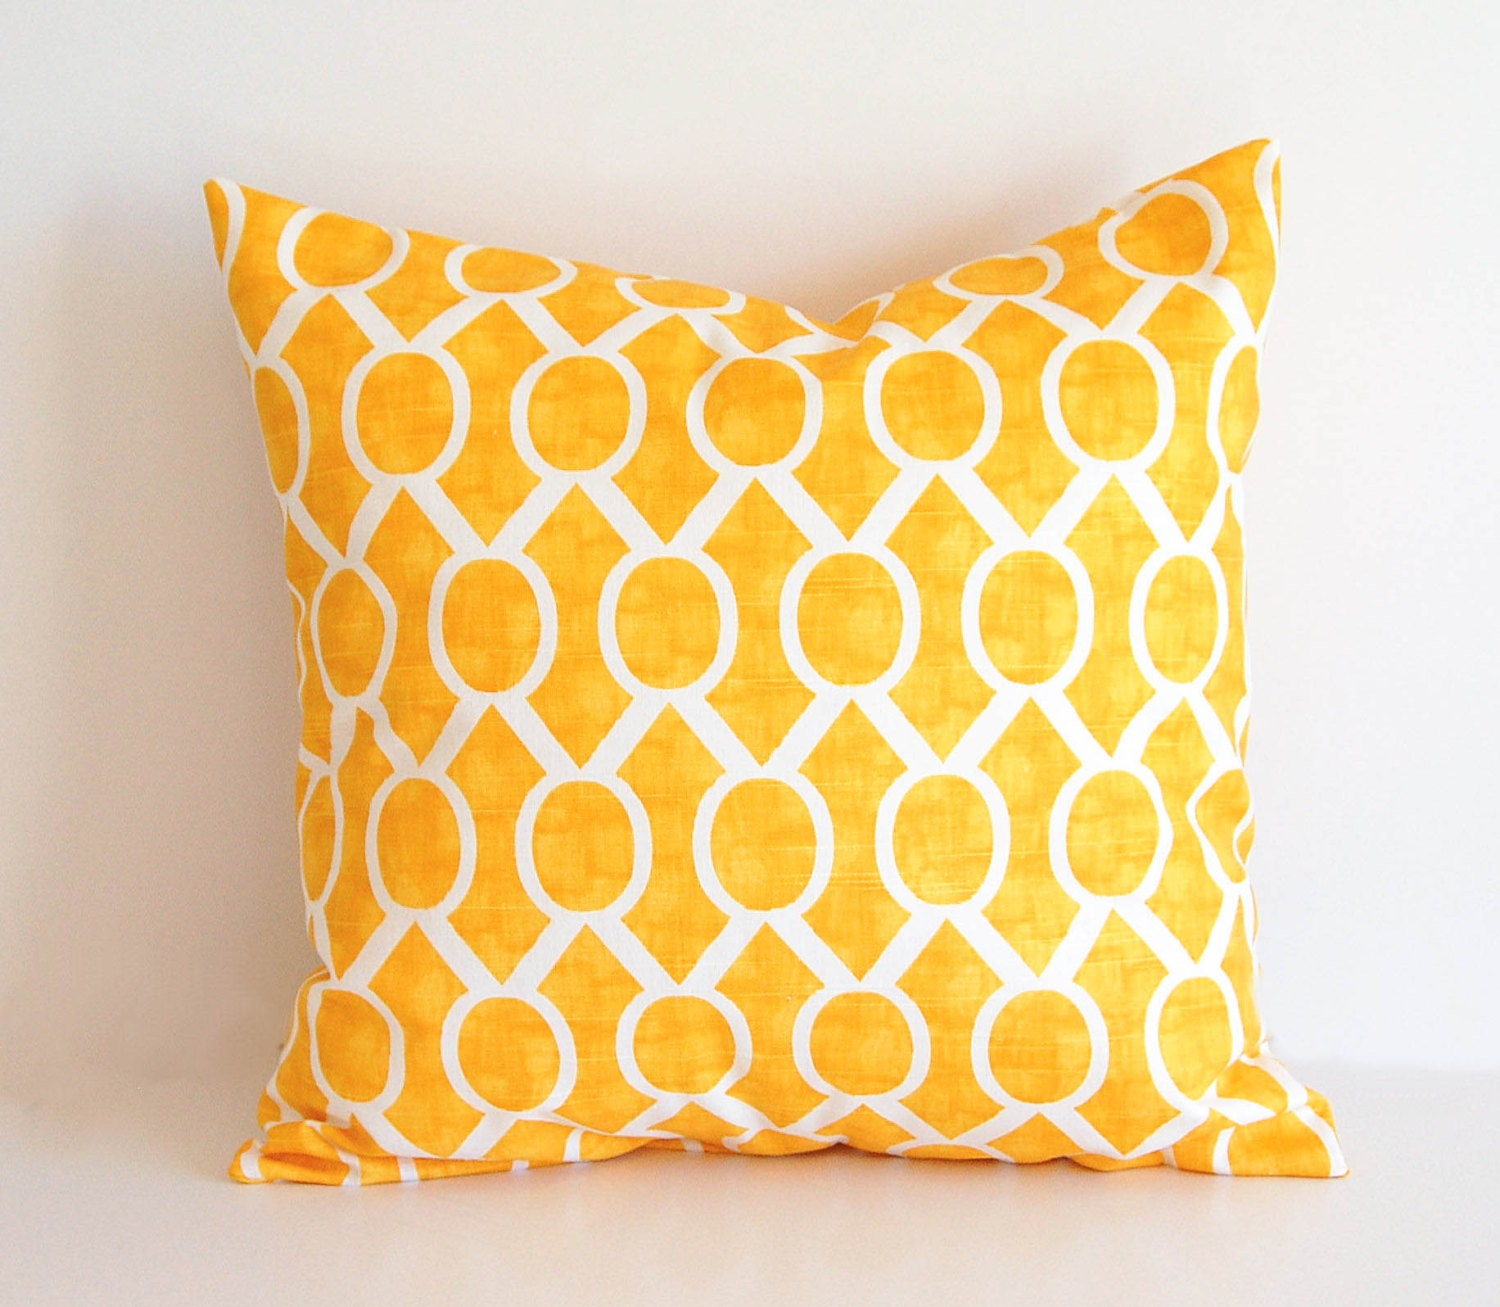 Mustard Throw Pillow Covers : Yellow throw pillow cover One cushion cover mustard yellow